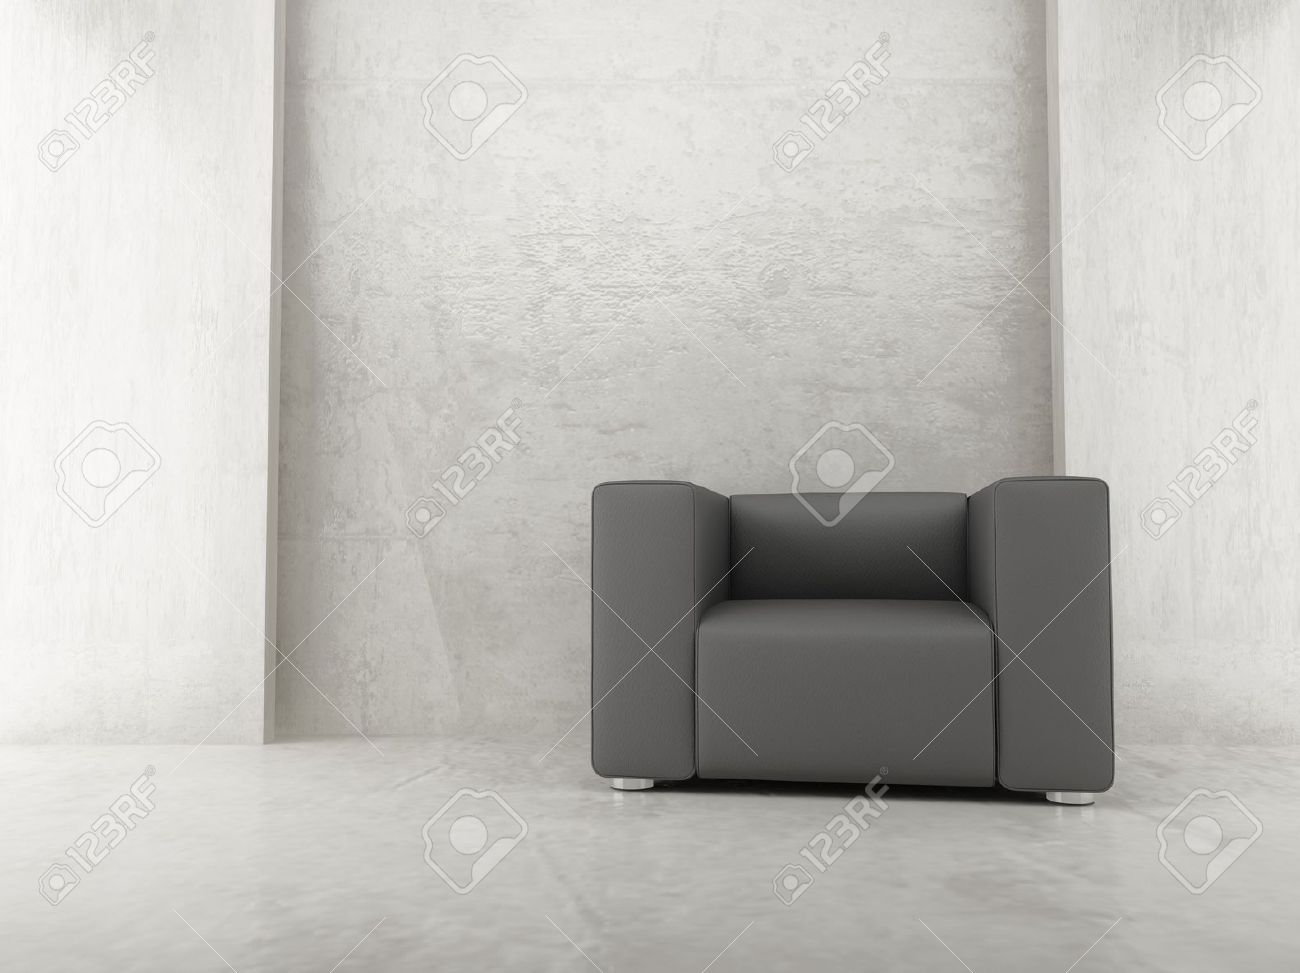 Modern leather armchair to face a blank wall - front view Stock Photo - 5594404 & Modern Leather Armchair To Face A Blank Wall - Front View Stock ...